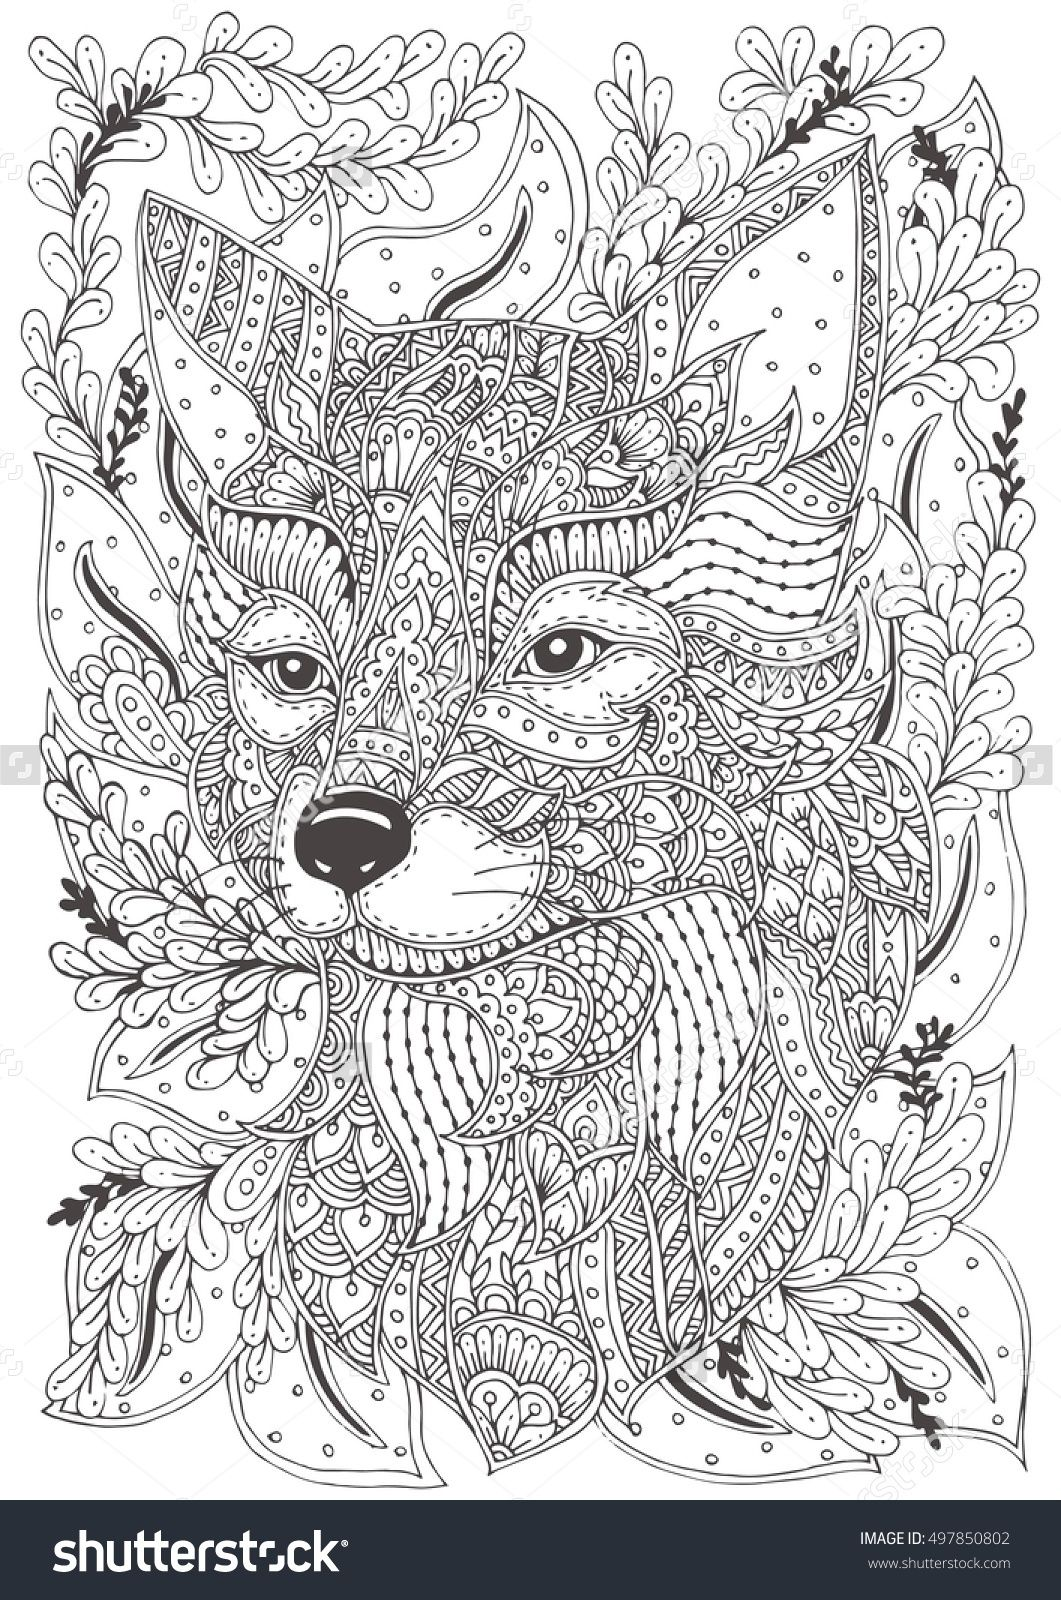 fox hand drawn with ethnic floral doodle pattern coloring page zendala design for spiritual. Black Bedroom Furniture Sets. Home Design Ideas